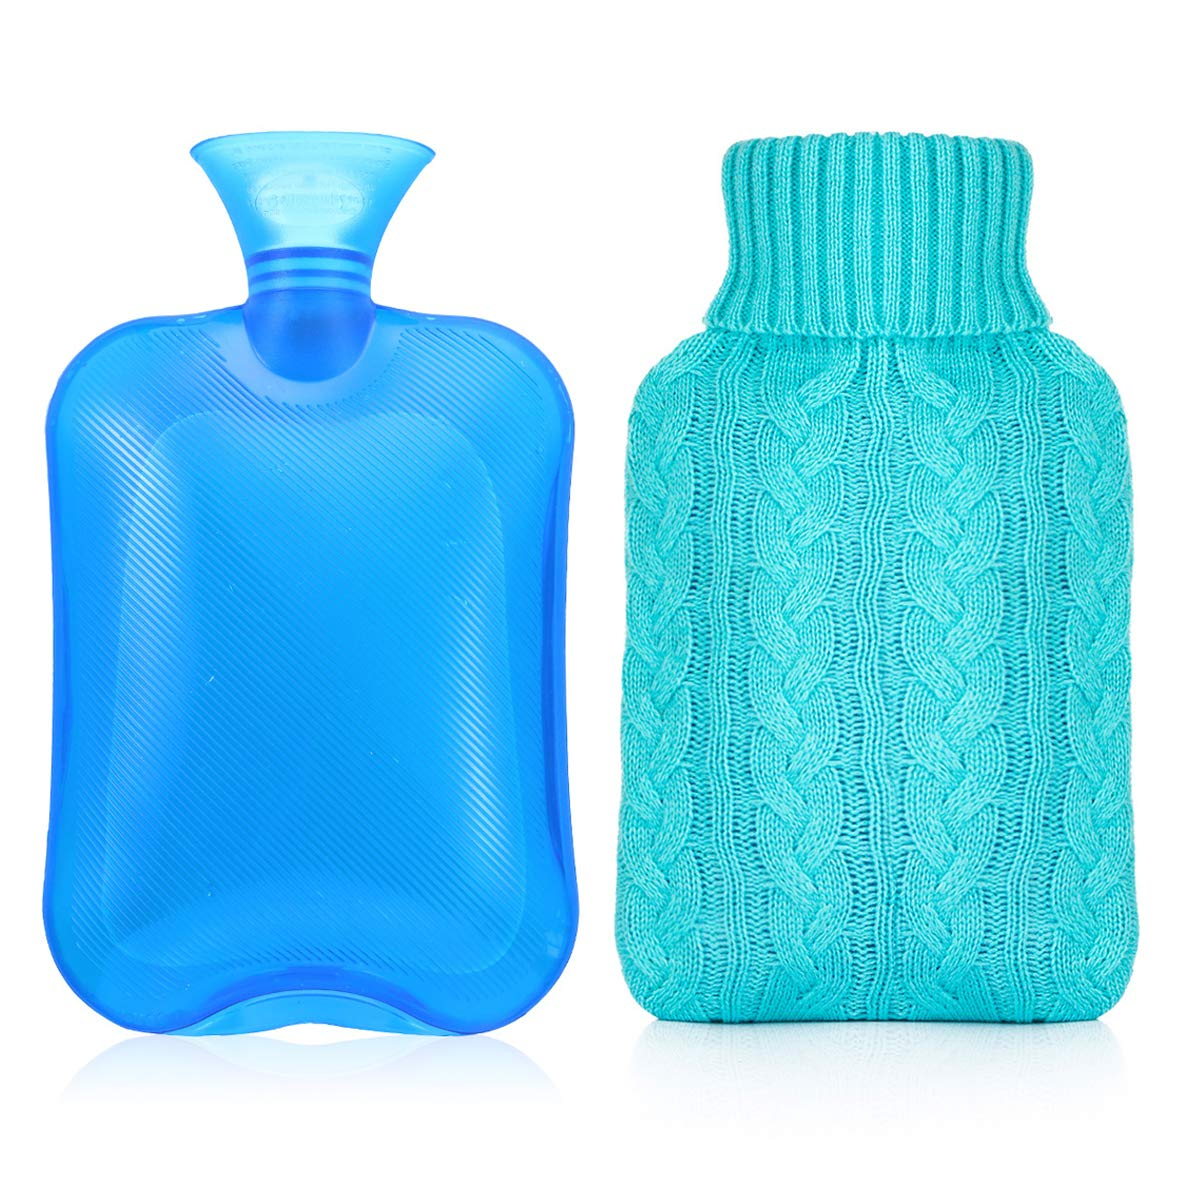 Samply Transparent Hot Water Bottle,PVC Hand Warmer Knit Cover,Blue,2L